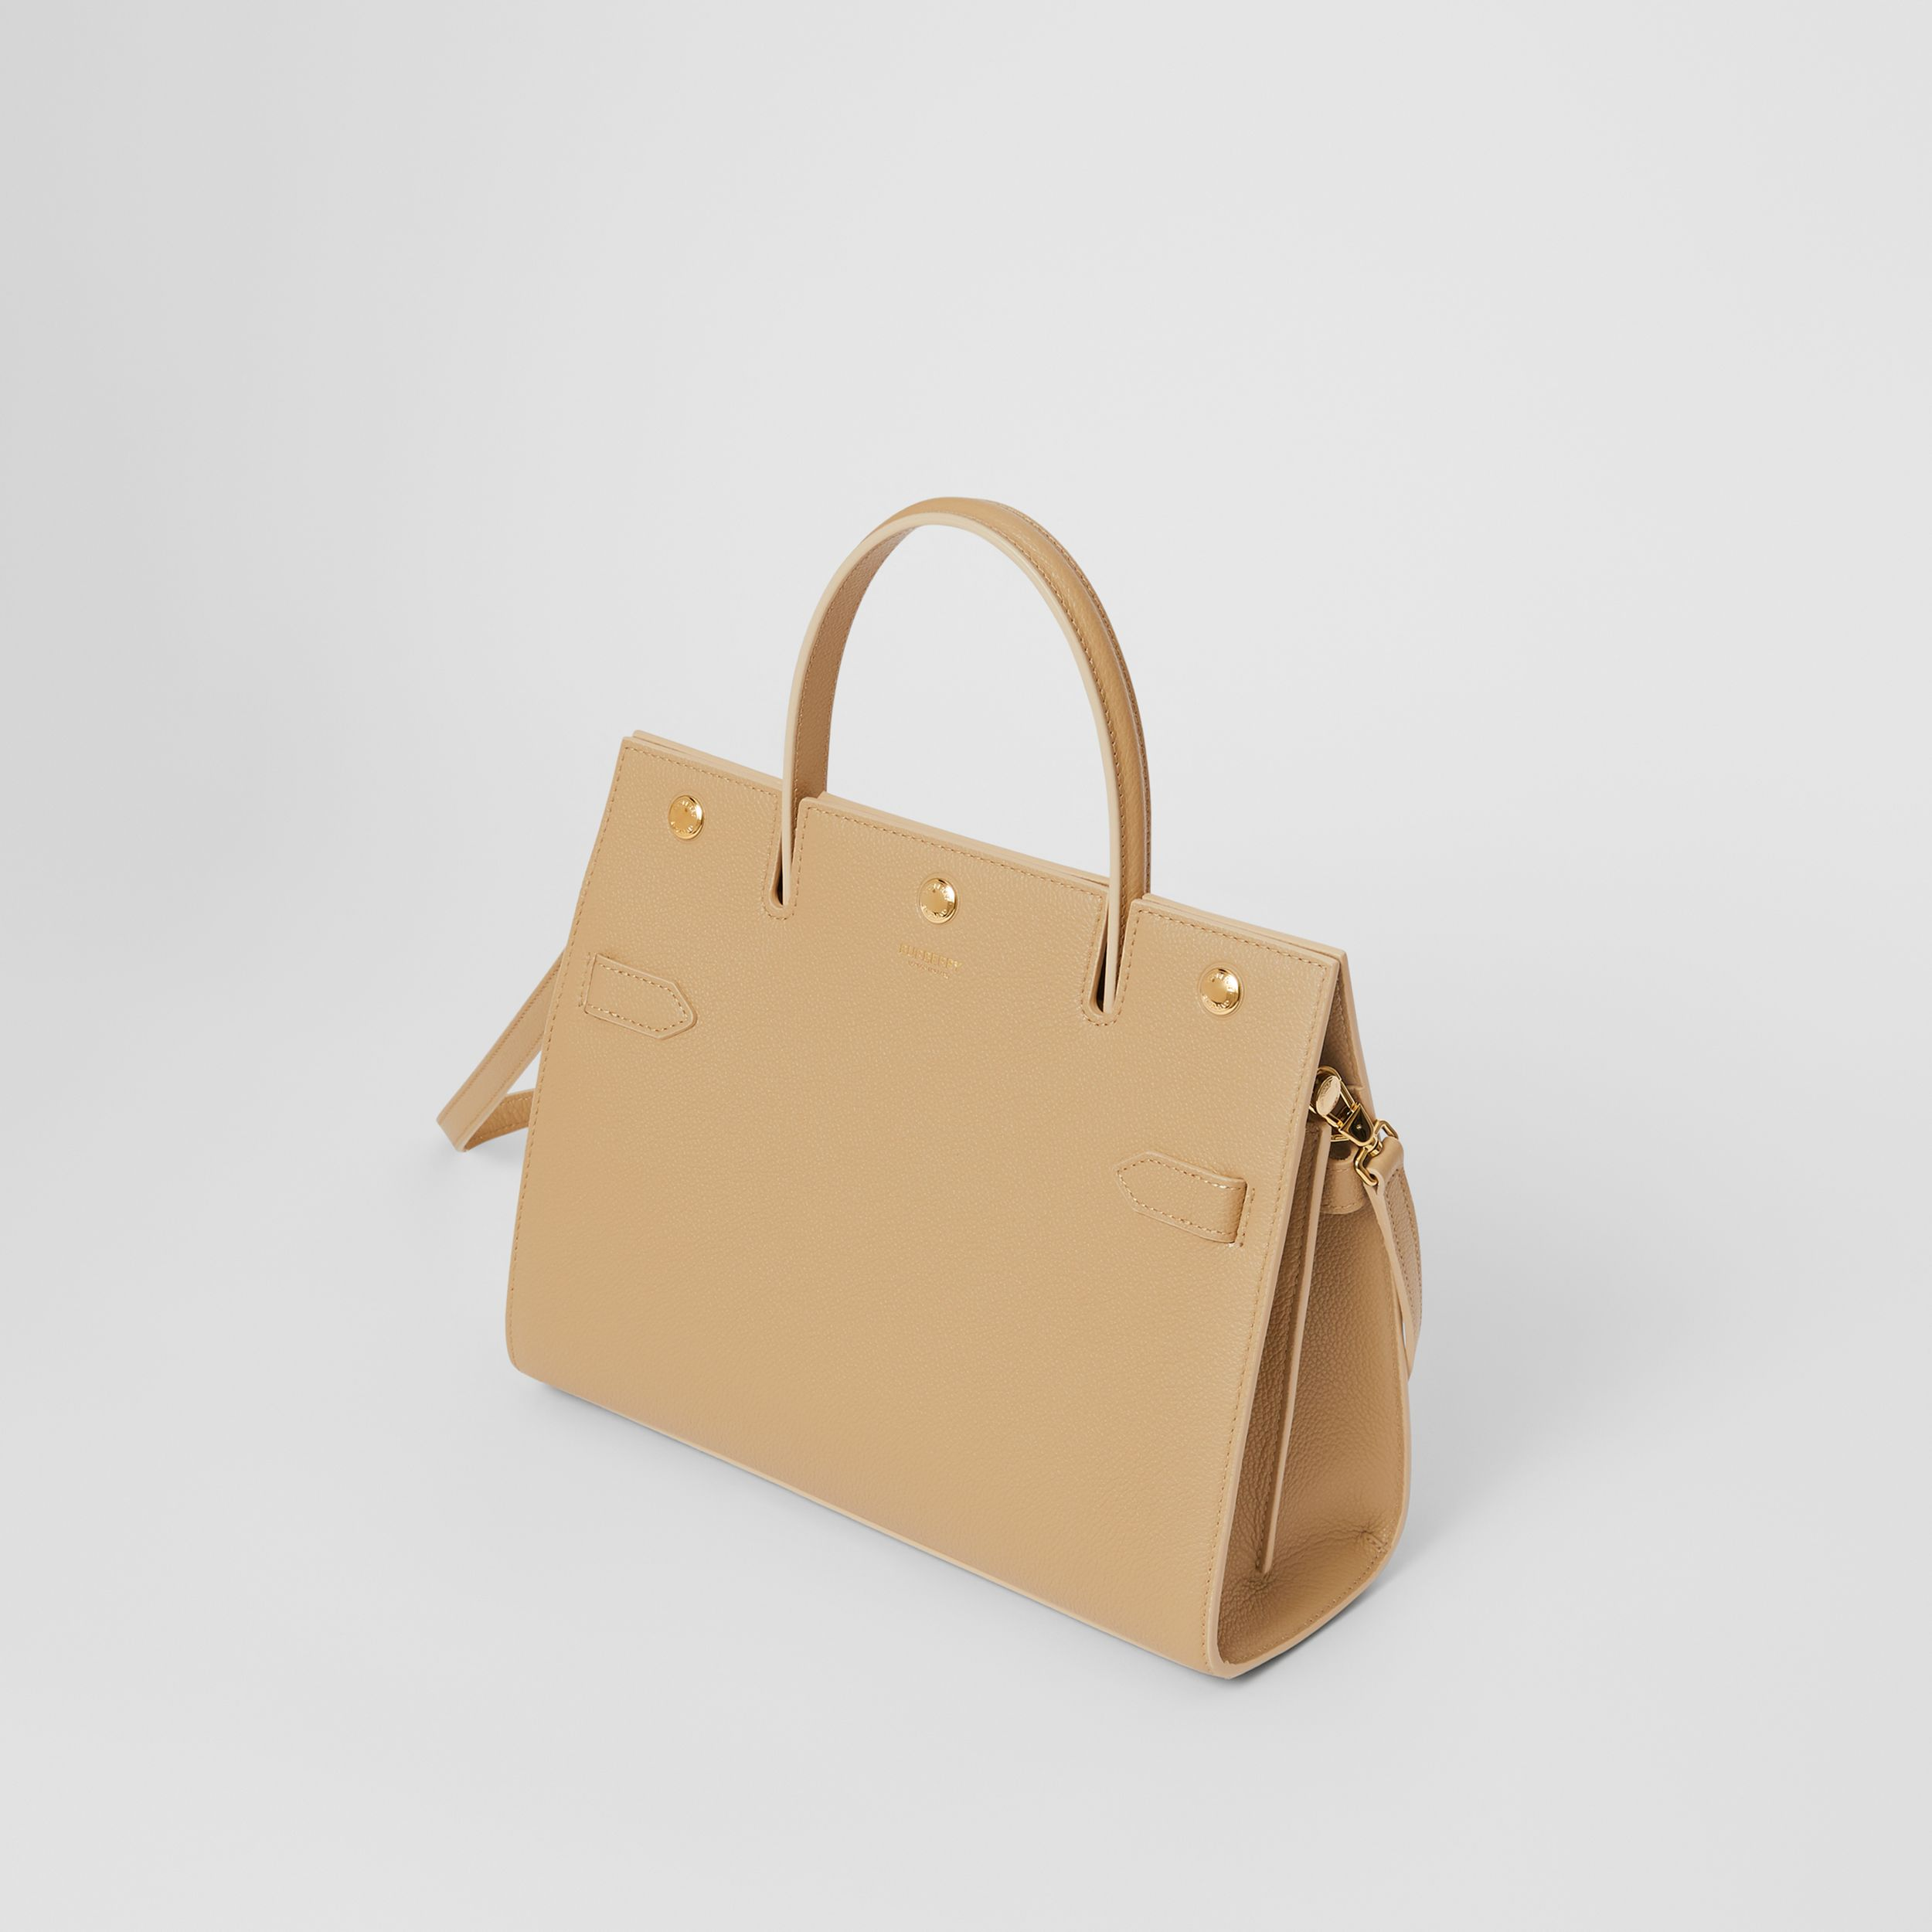 Small Leather Title Bag in Honey - Women | Burberry United States - 4